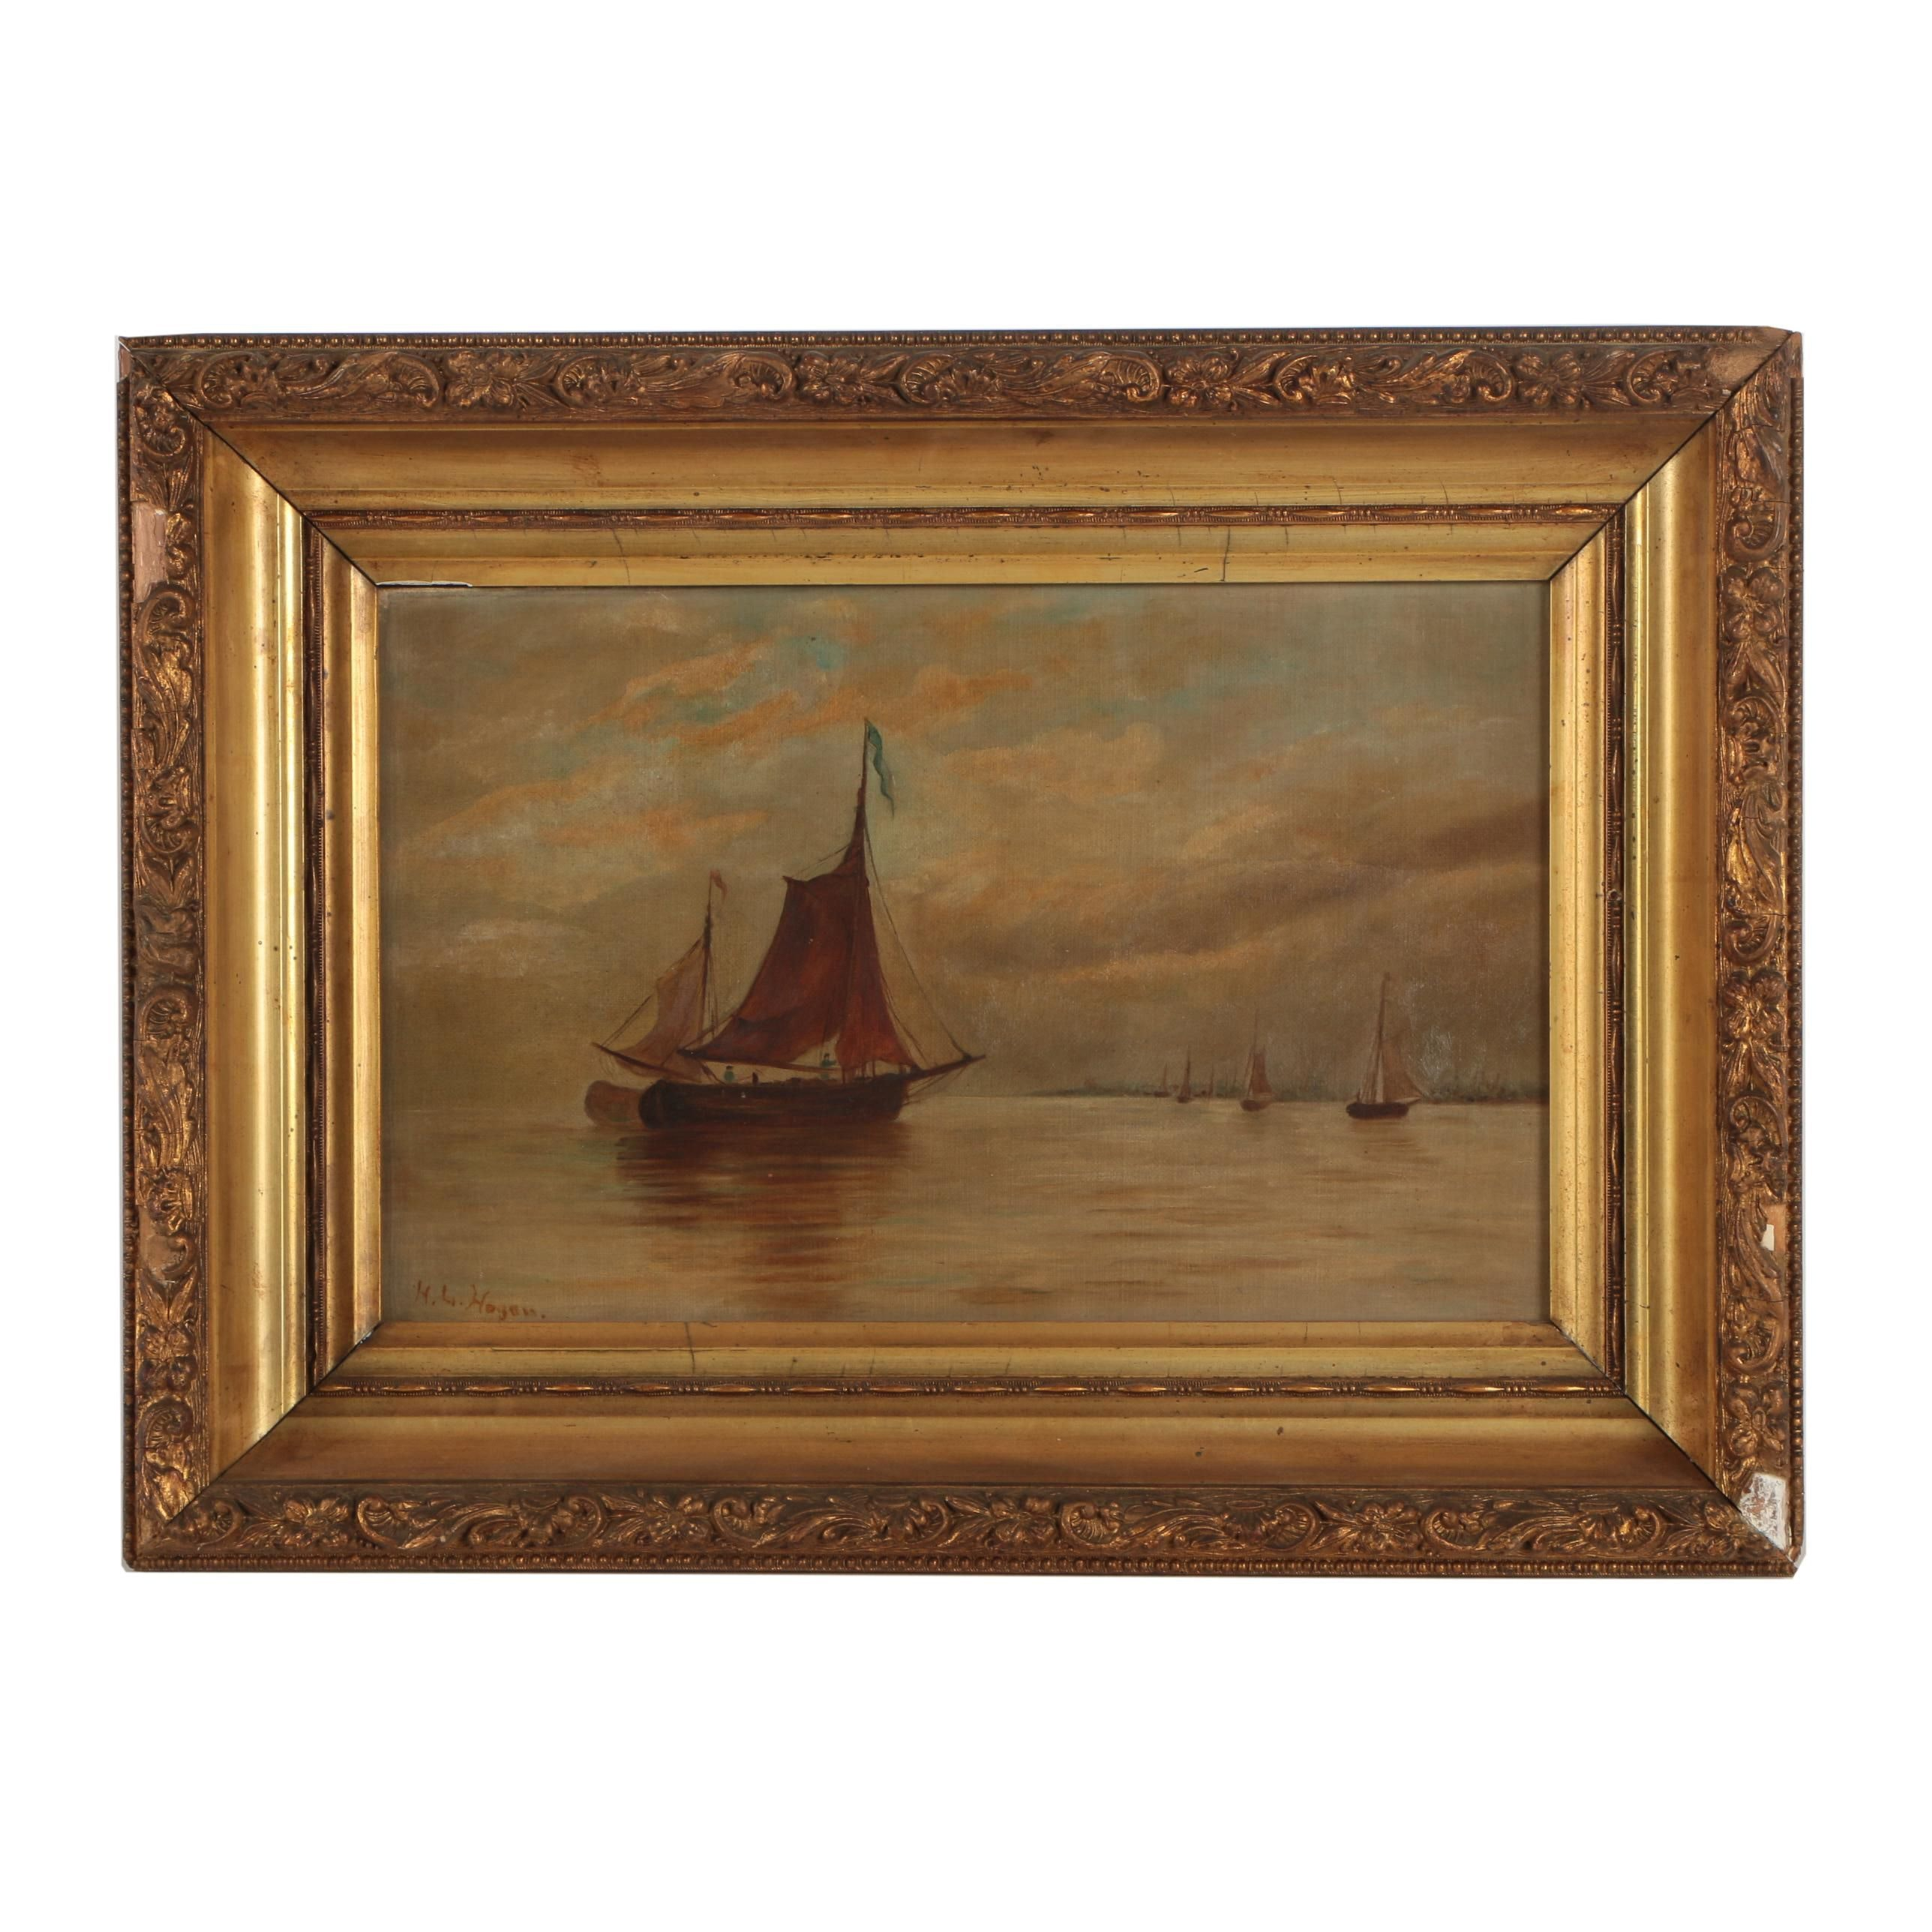 Antique 19th-Century H.L. Hogan Oil Painting of Ship at Sea